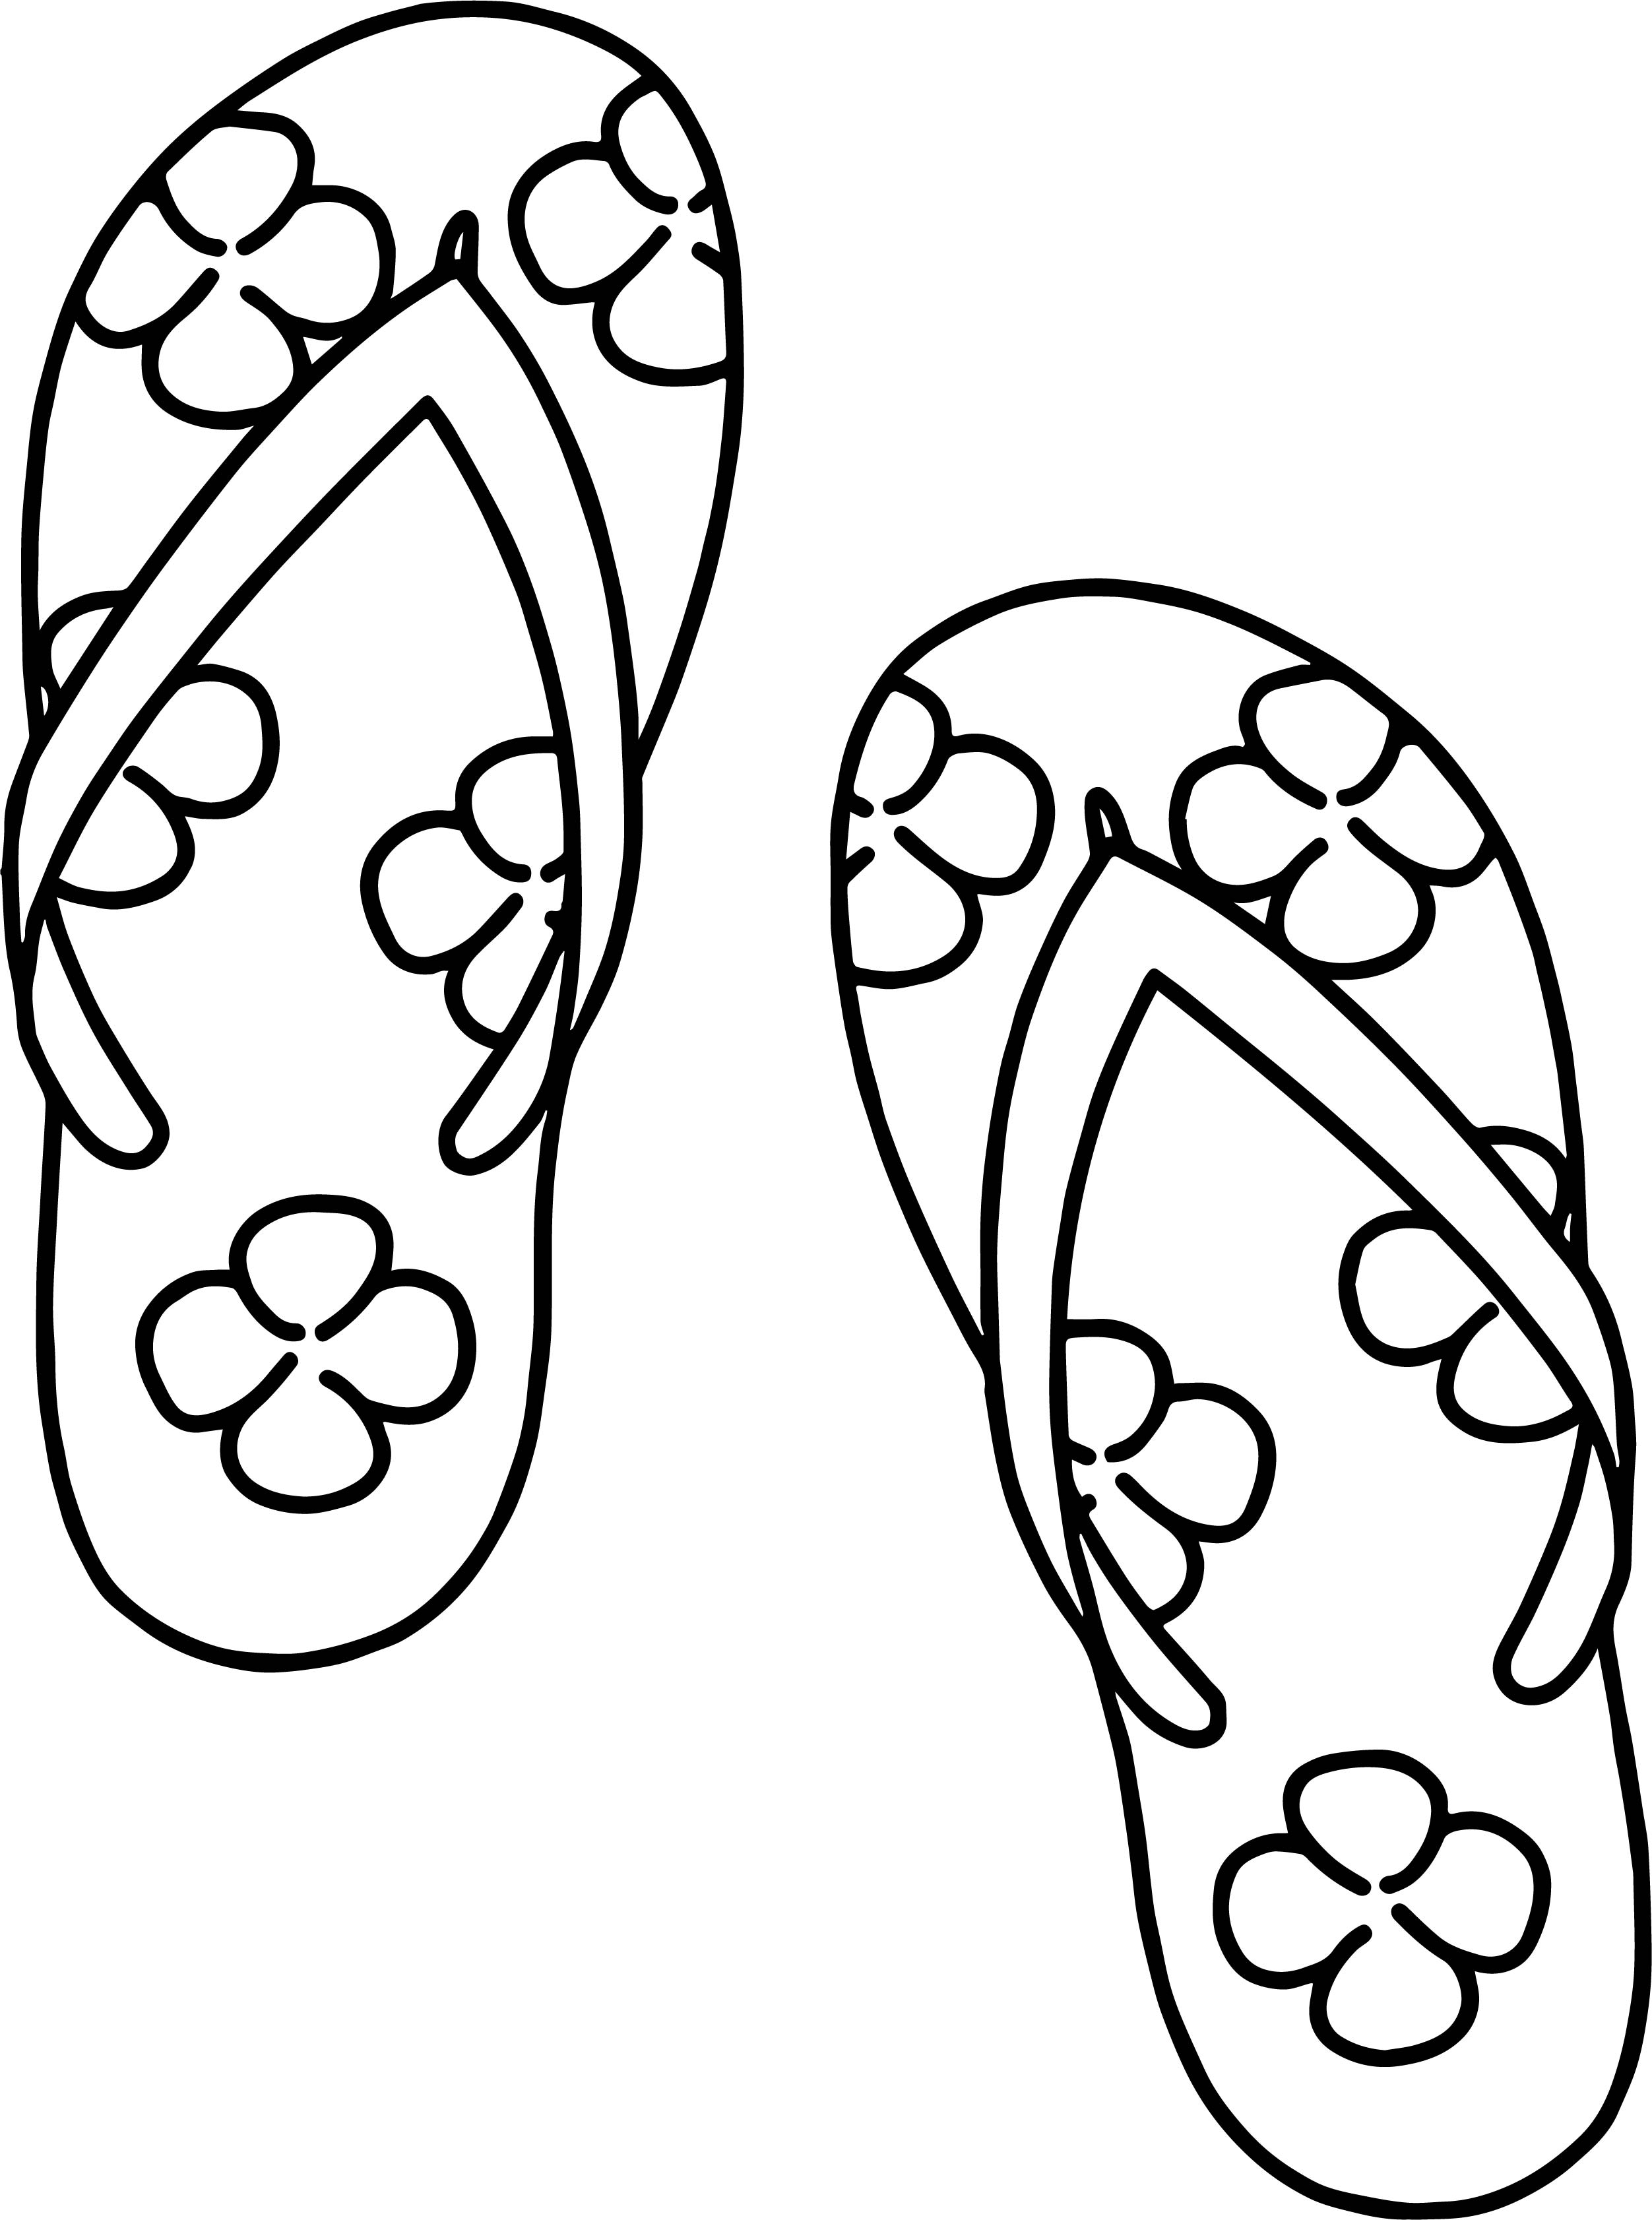 Slipper Summer Clover Coloring Page